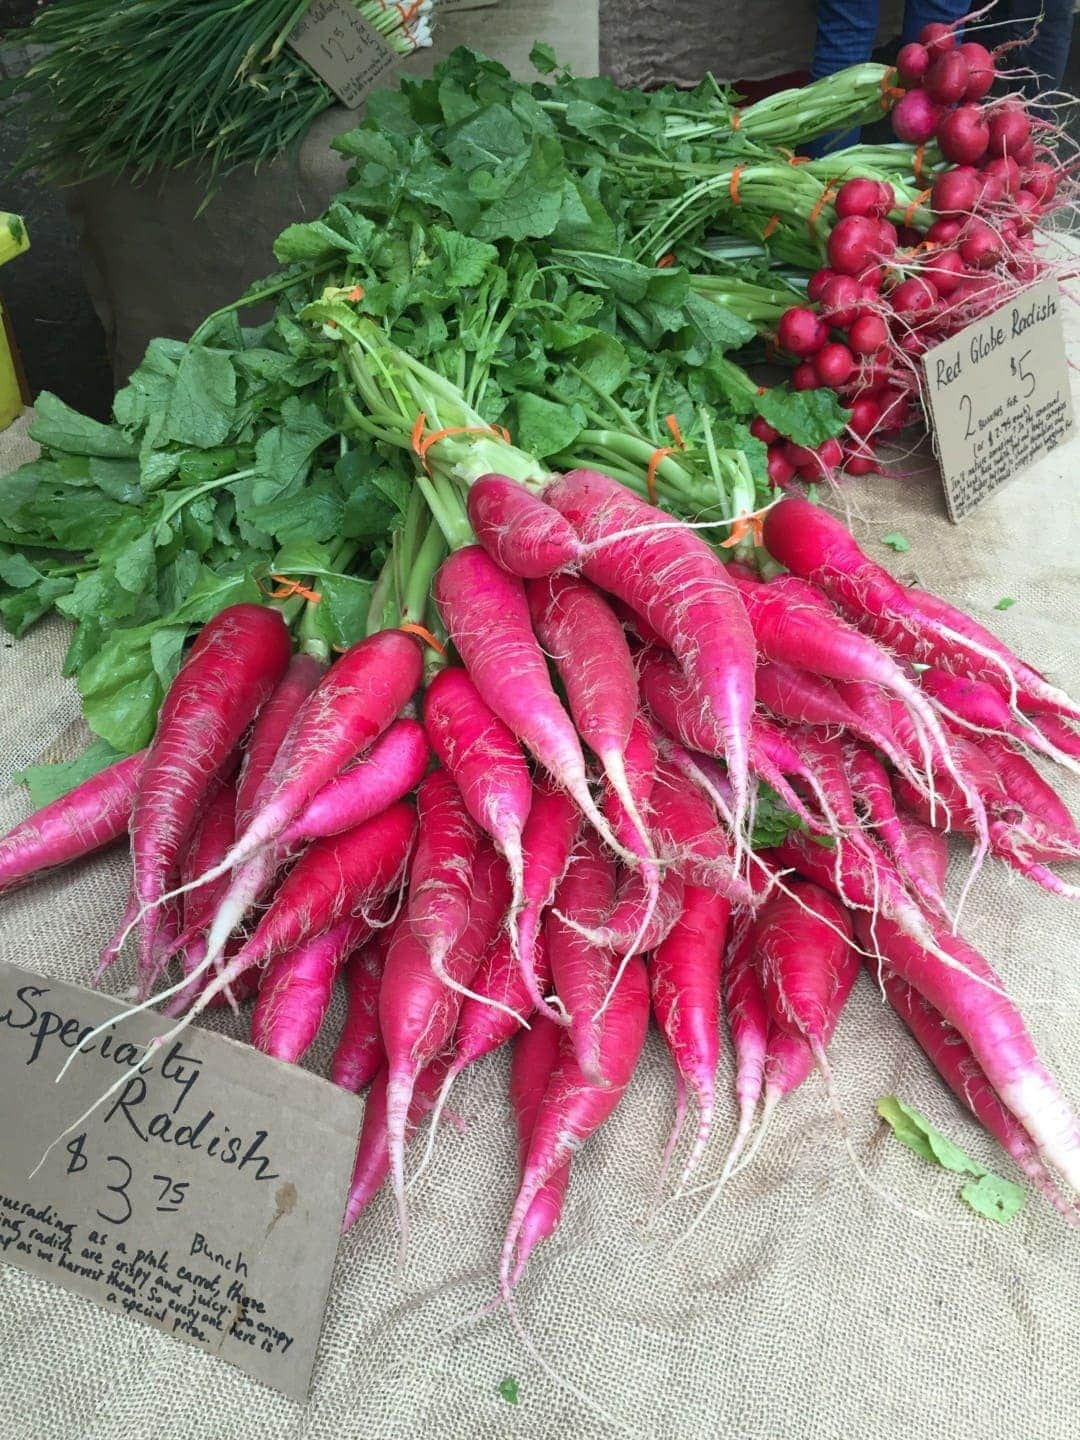 Bright Pink Radishes on Sale at Farmers' Market